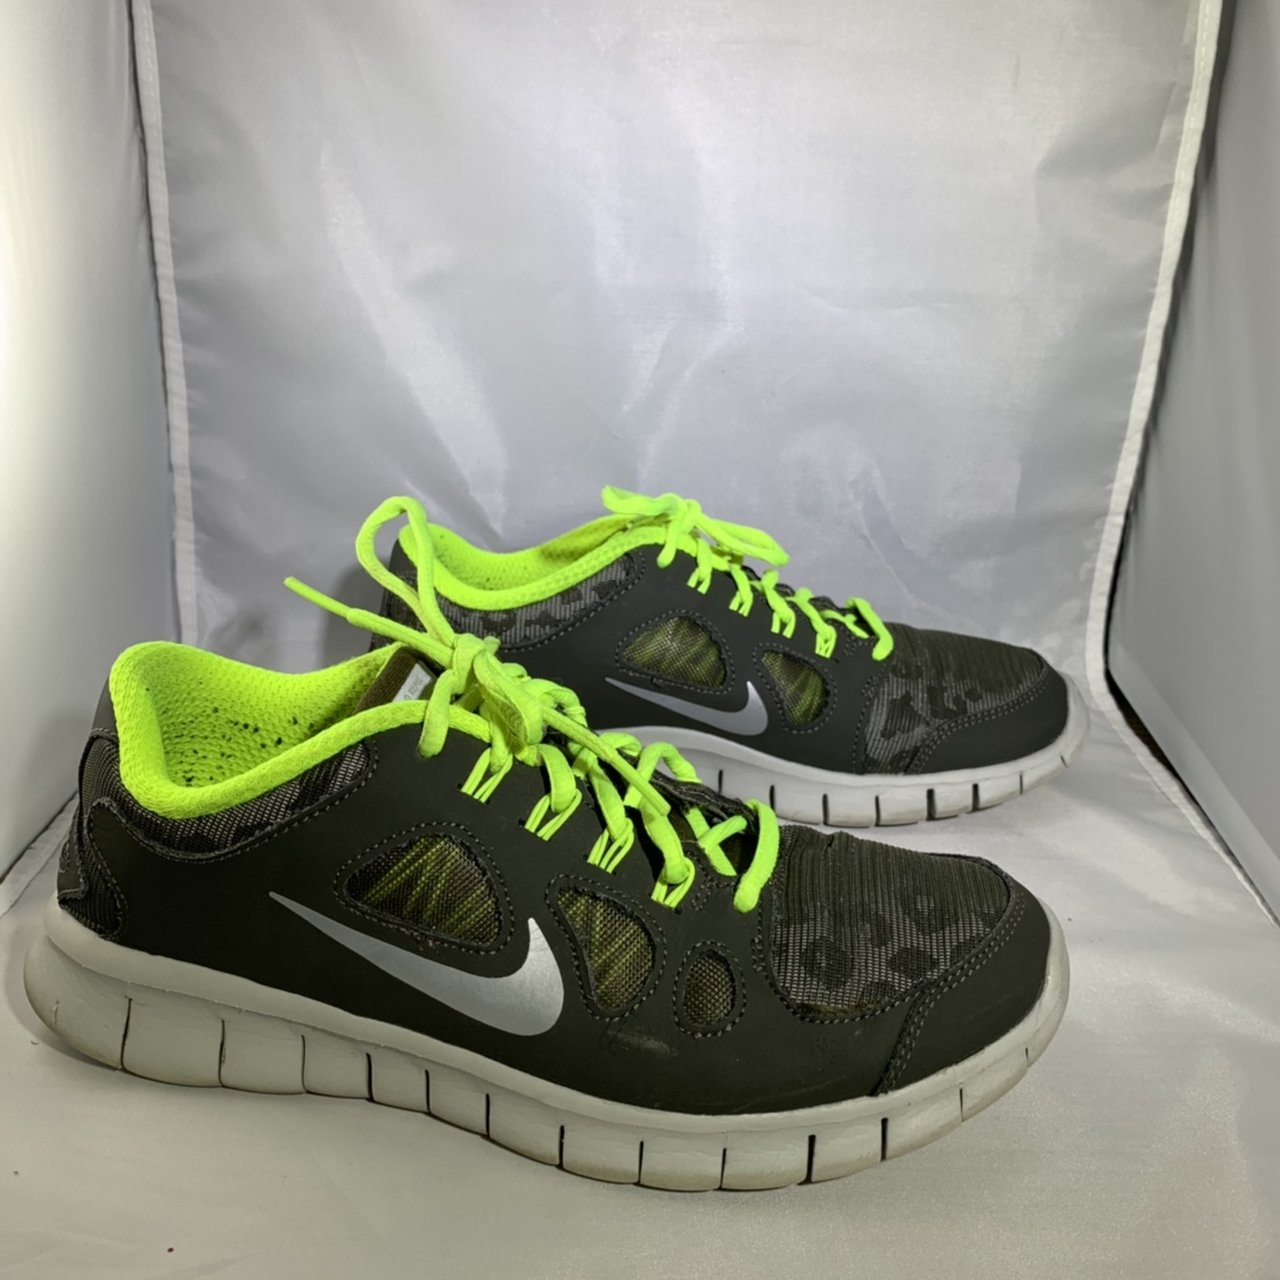 brand new 5ab89 a0ffe In good condition. Nike Youth Free 5.0 Shield (GS) Dark Size - Depop